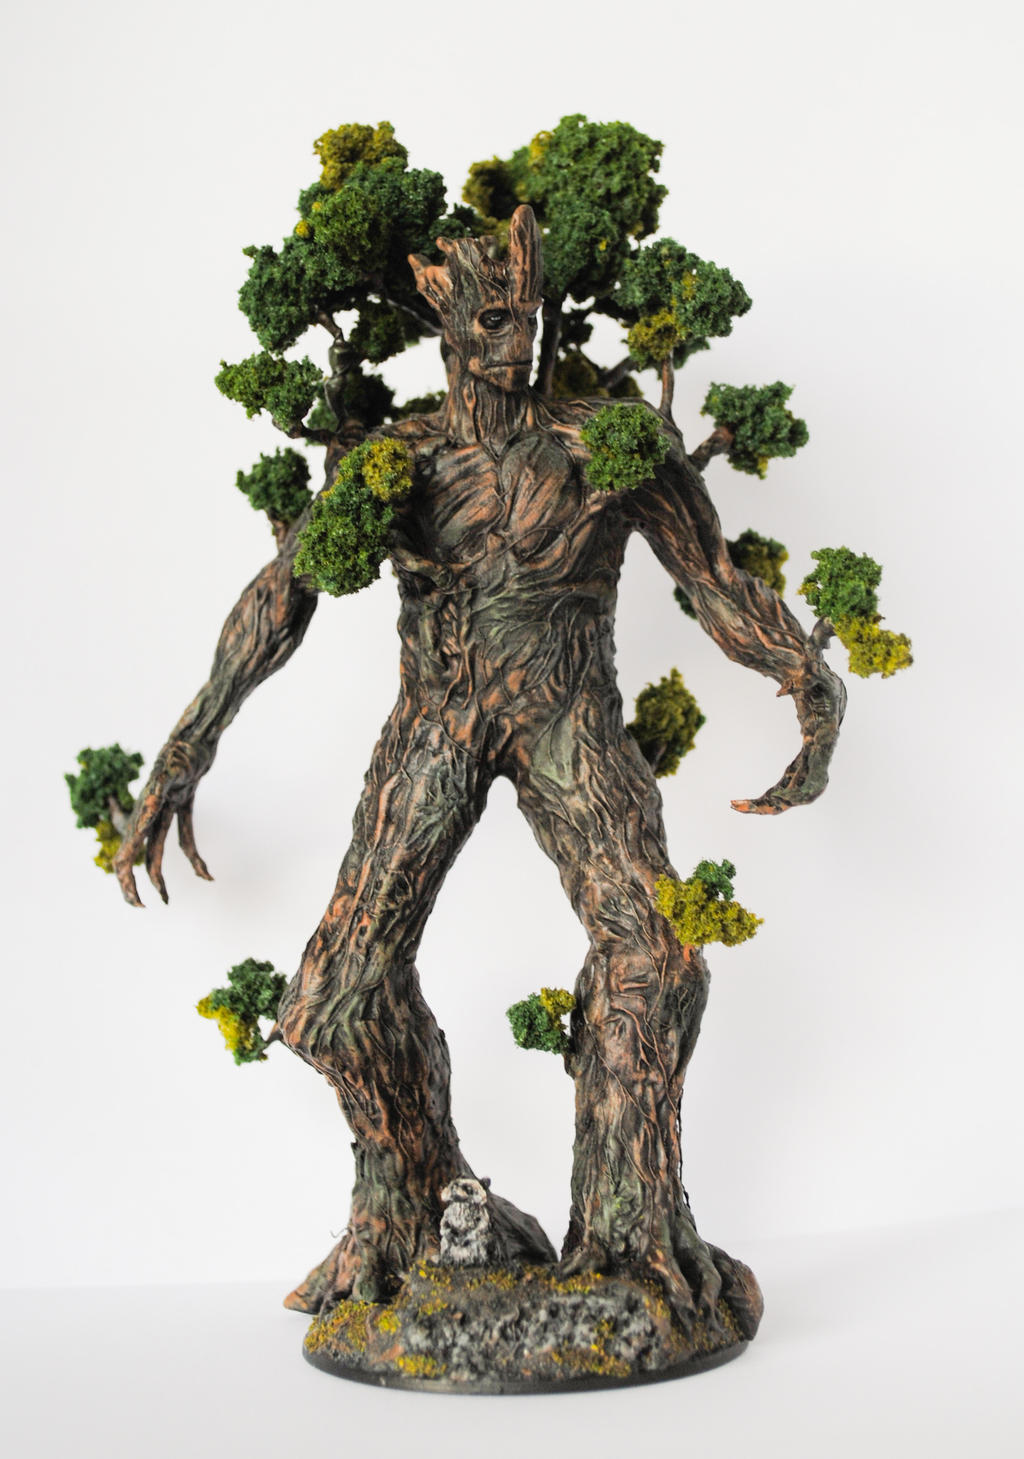 Groot Ent 1 by Megashades